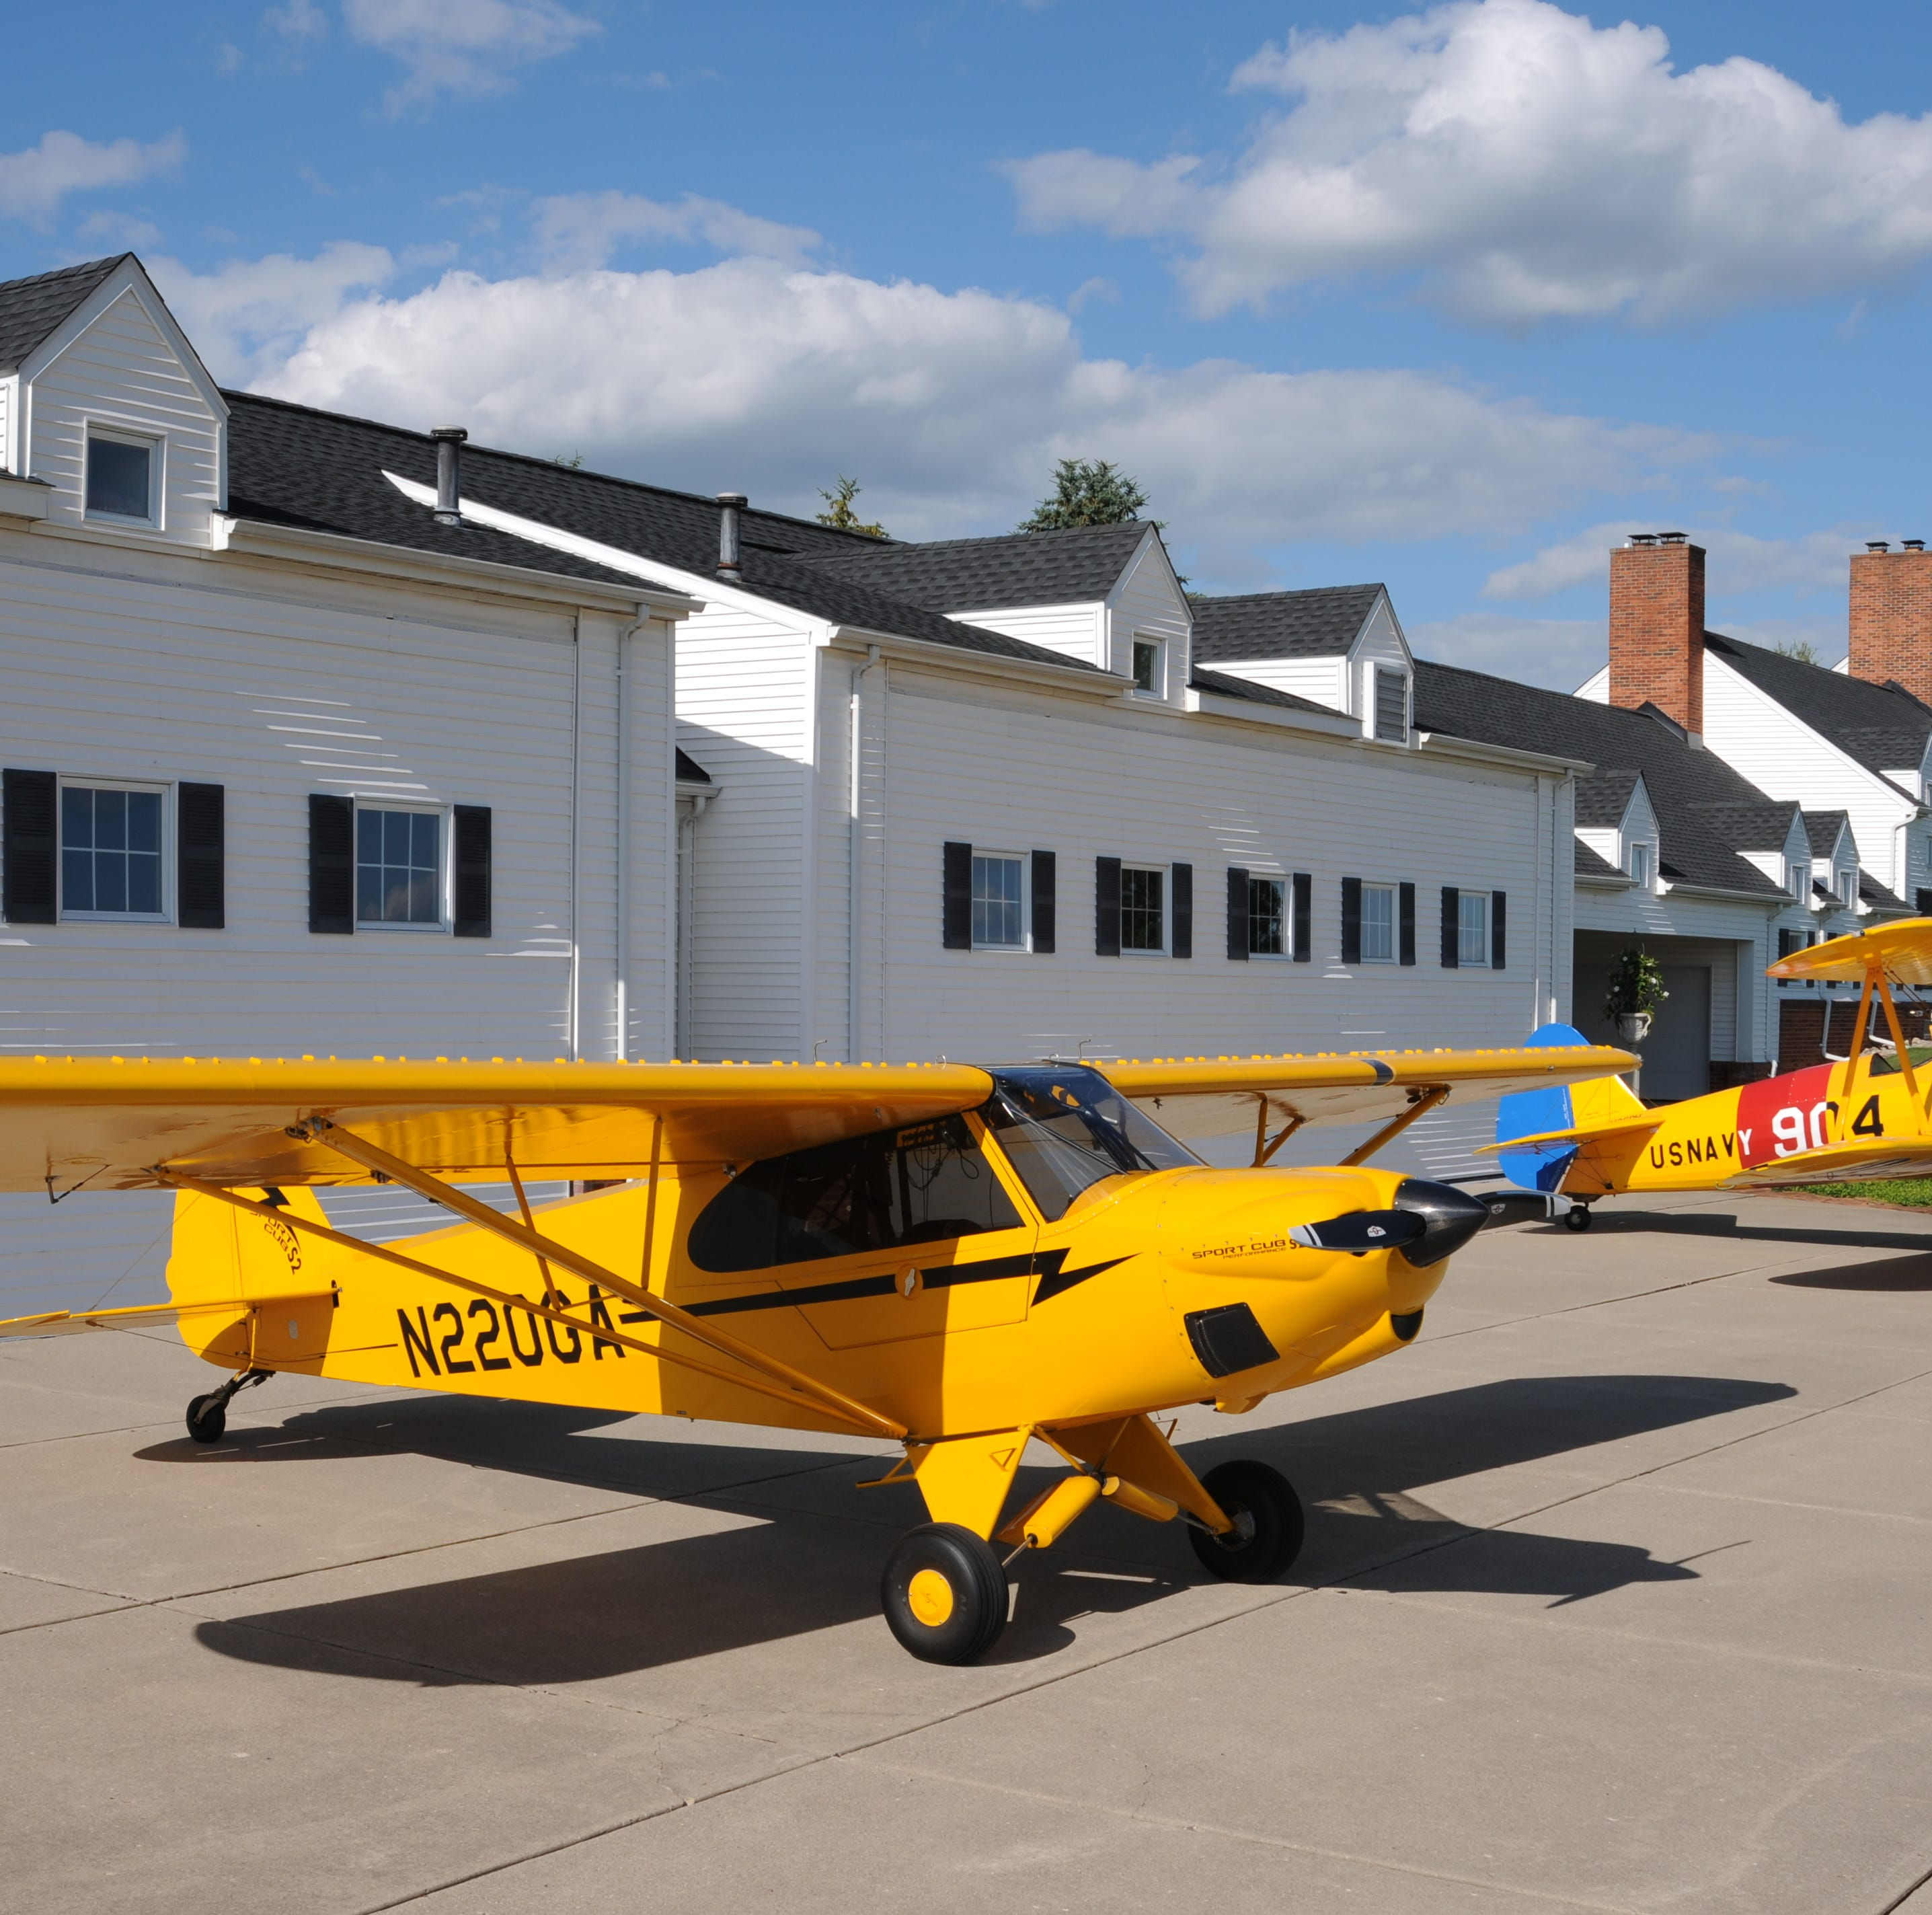 Oxford Township's Sky Ranch features private airport